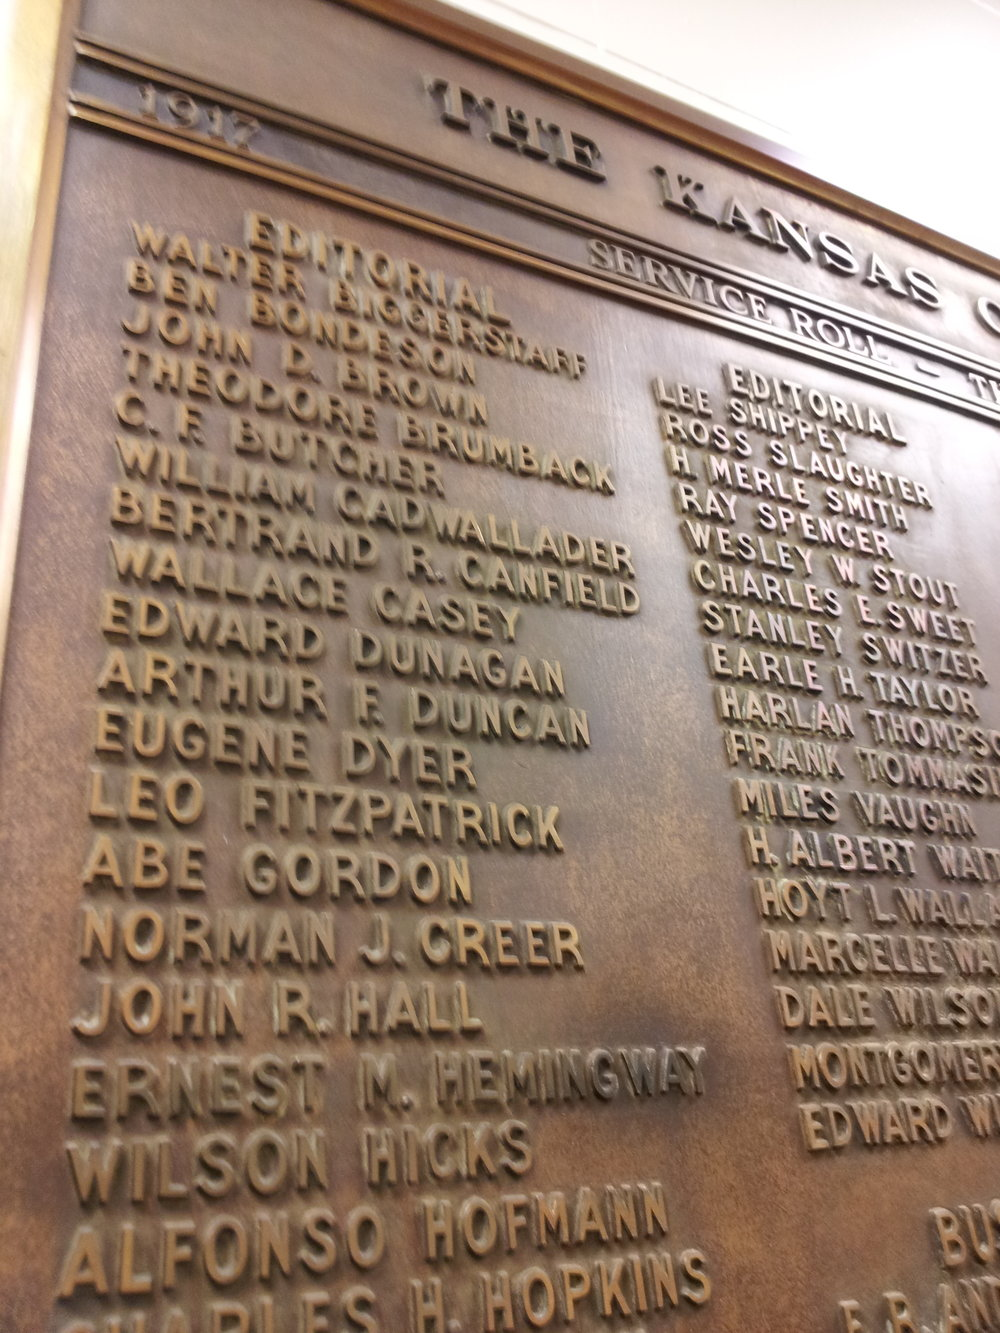 A WWI service plaque in the historic Kansas City Star building keeps the Hemingway link alive. I'll be curious to know where the plaque will go when a new owner takes over the building..